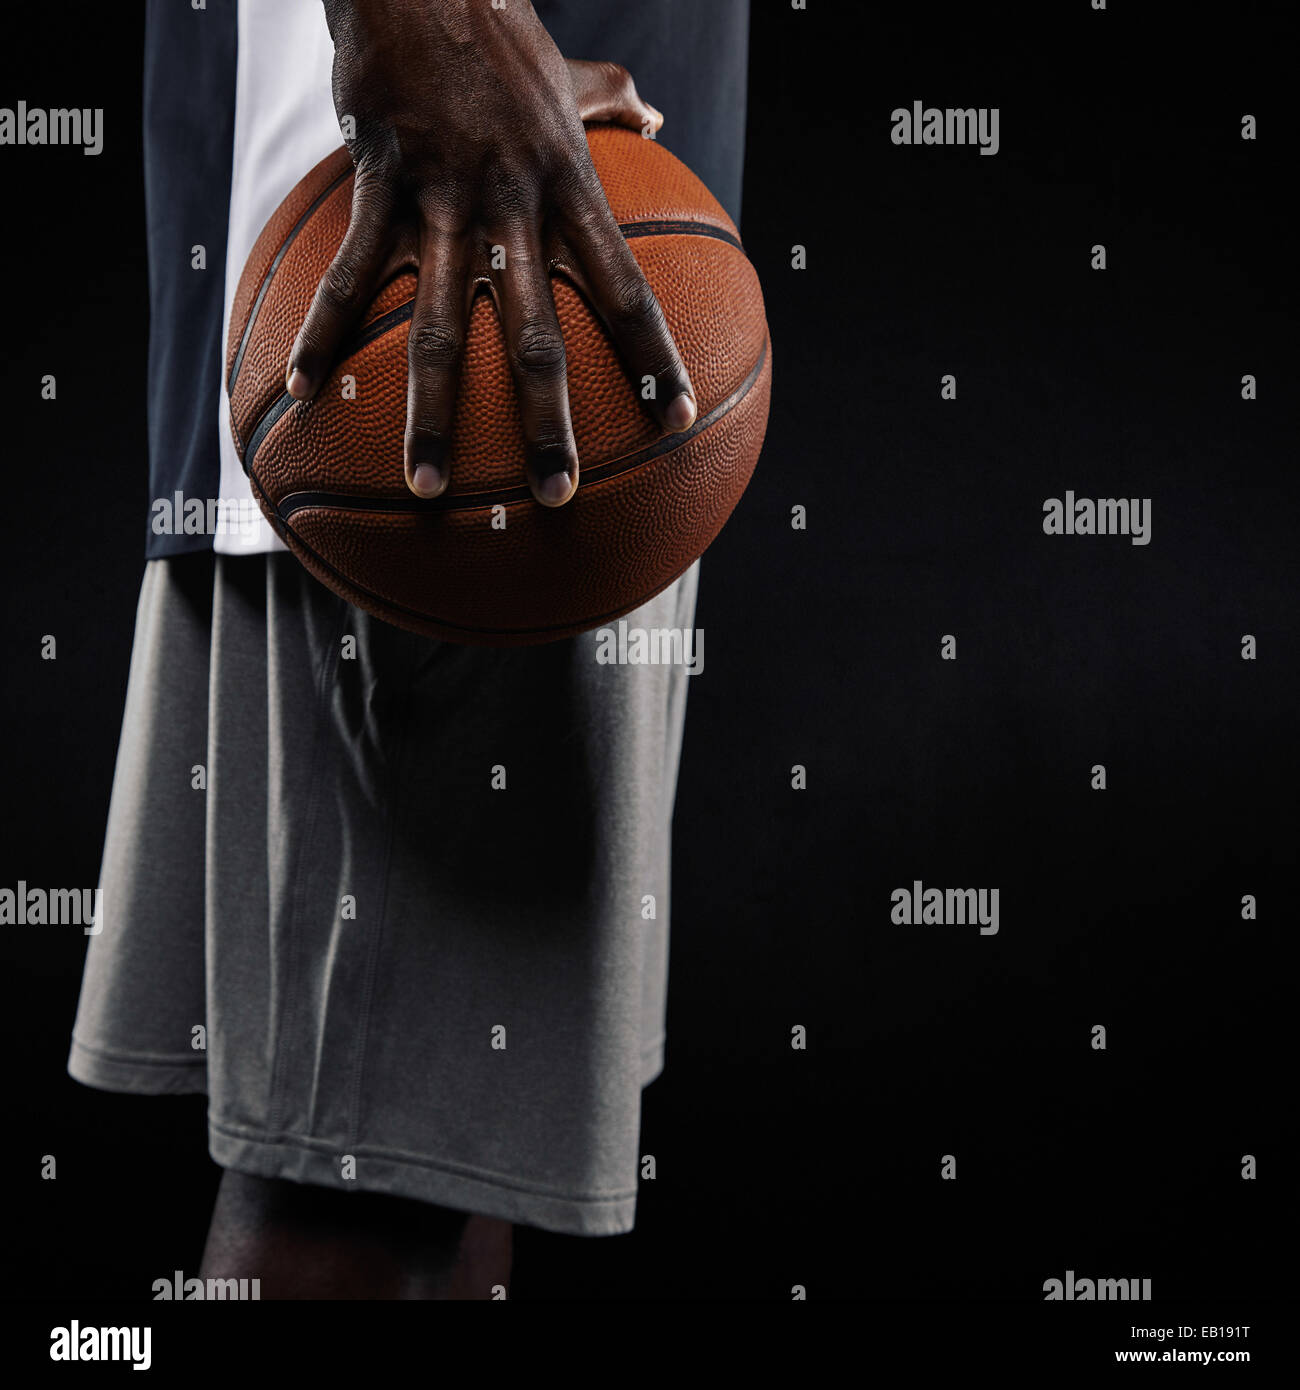 Cropped image of a young man holding basketball against black background. Mid section image of African basketball - Stock Image